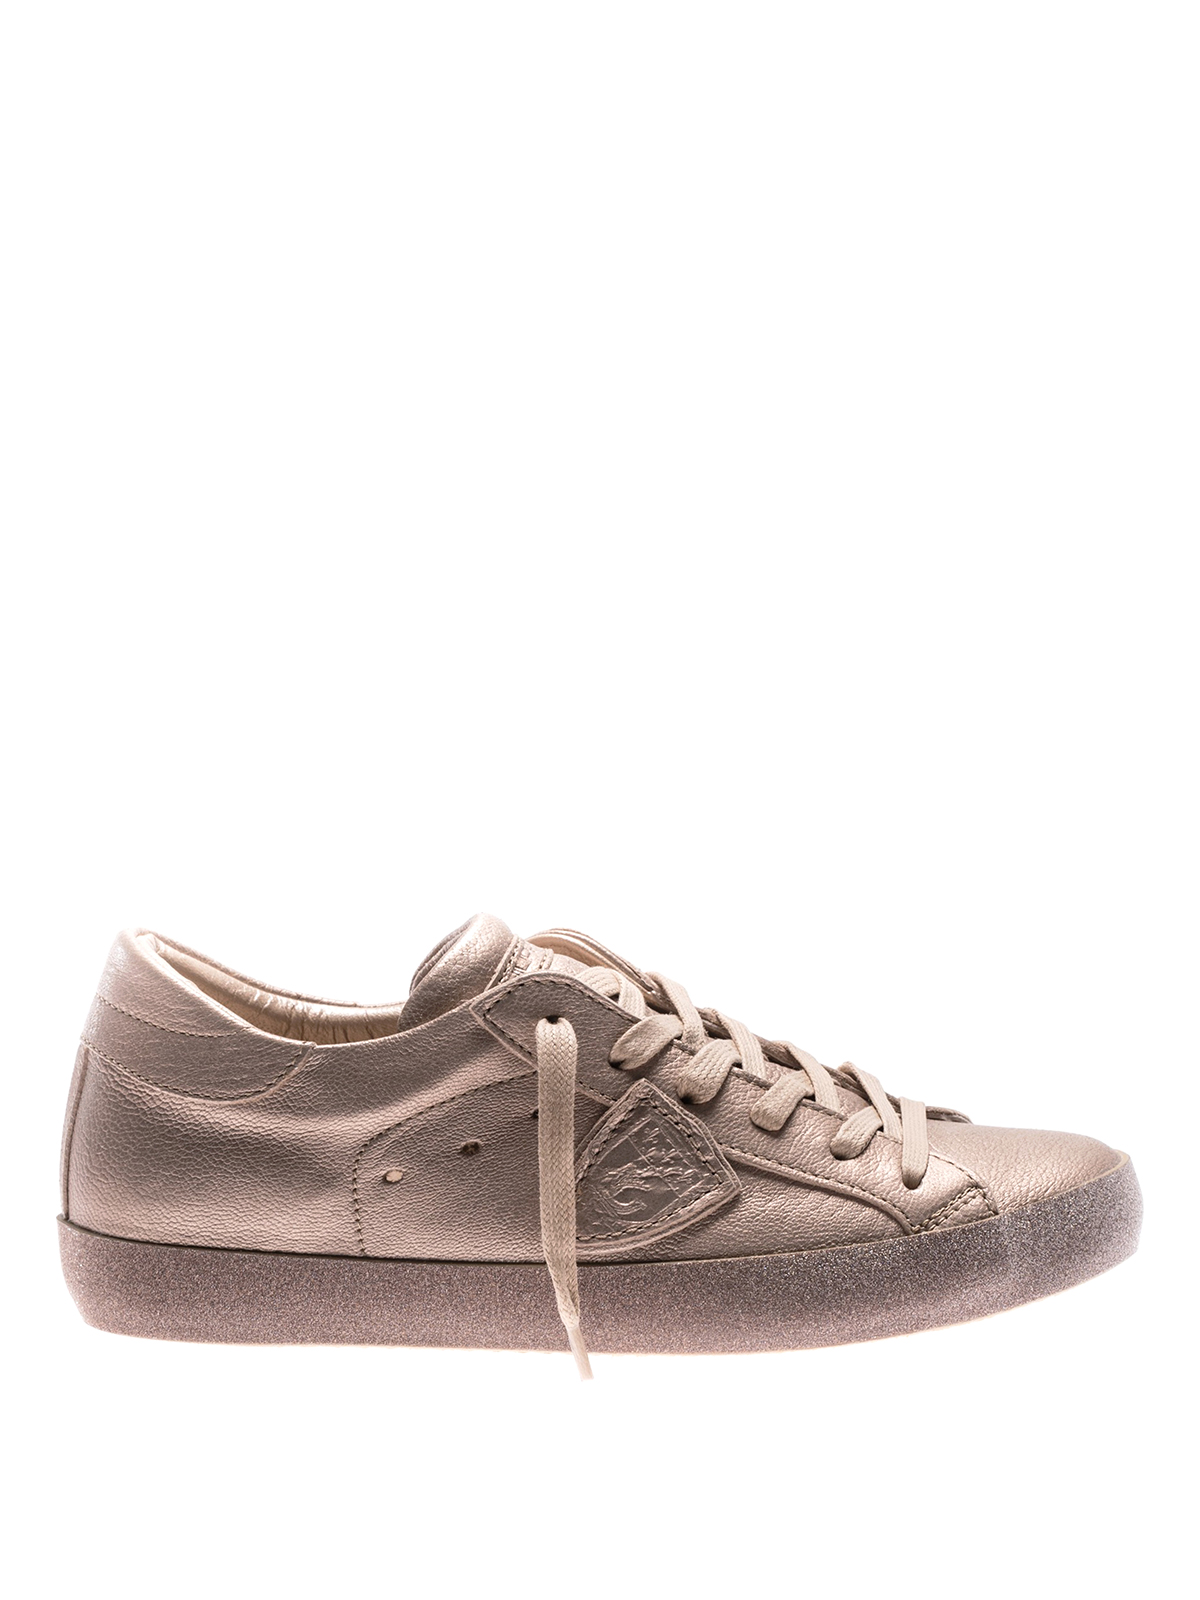 Paris champagne leather sneakers Philippe Model Wiki Discount Looking For ubq1tj